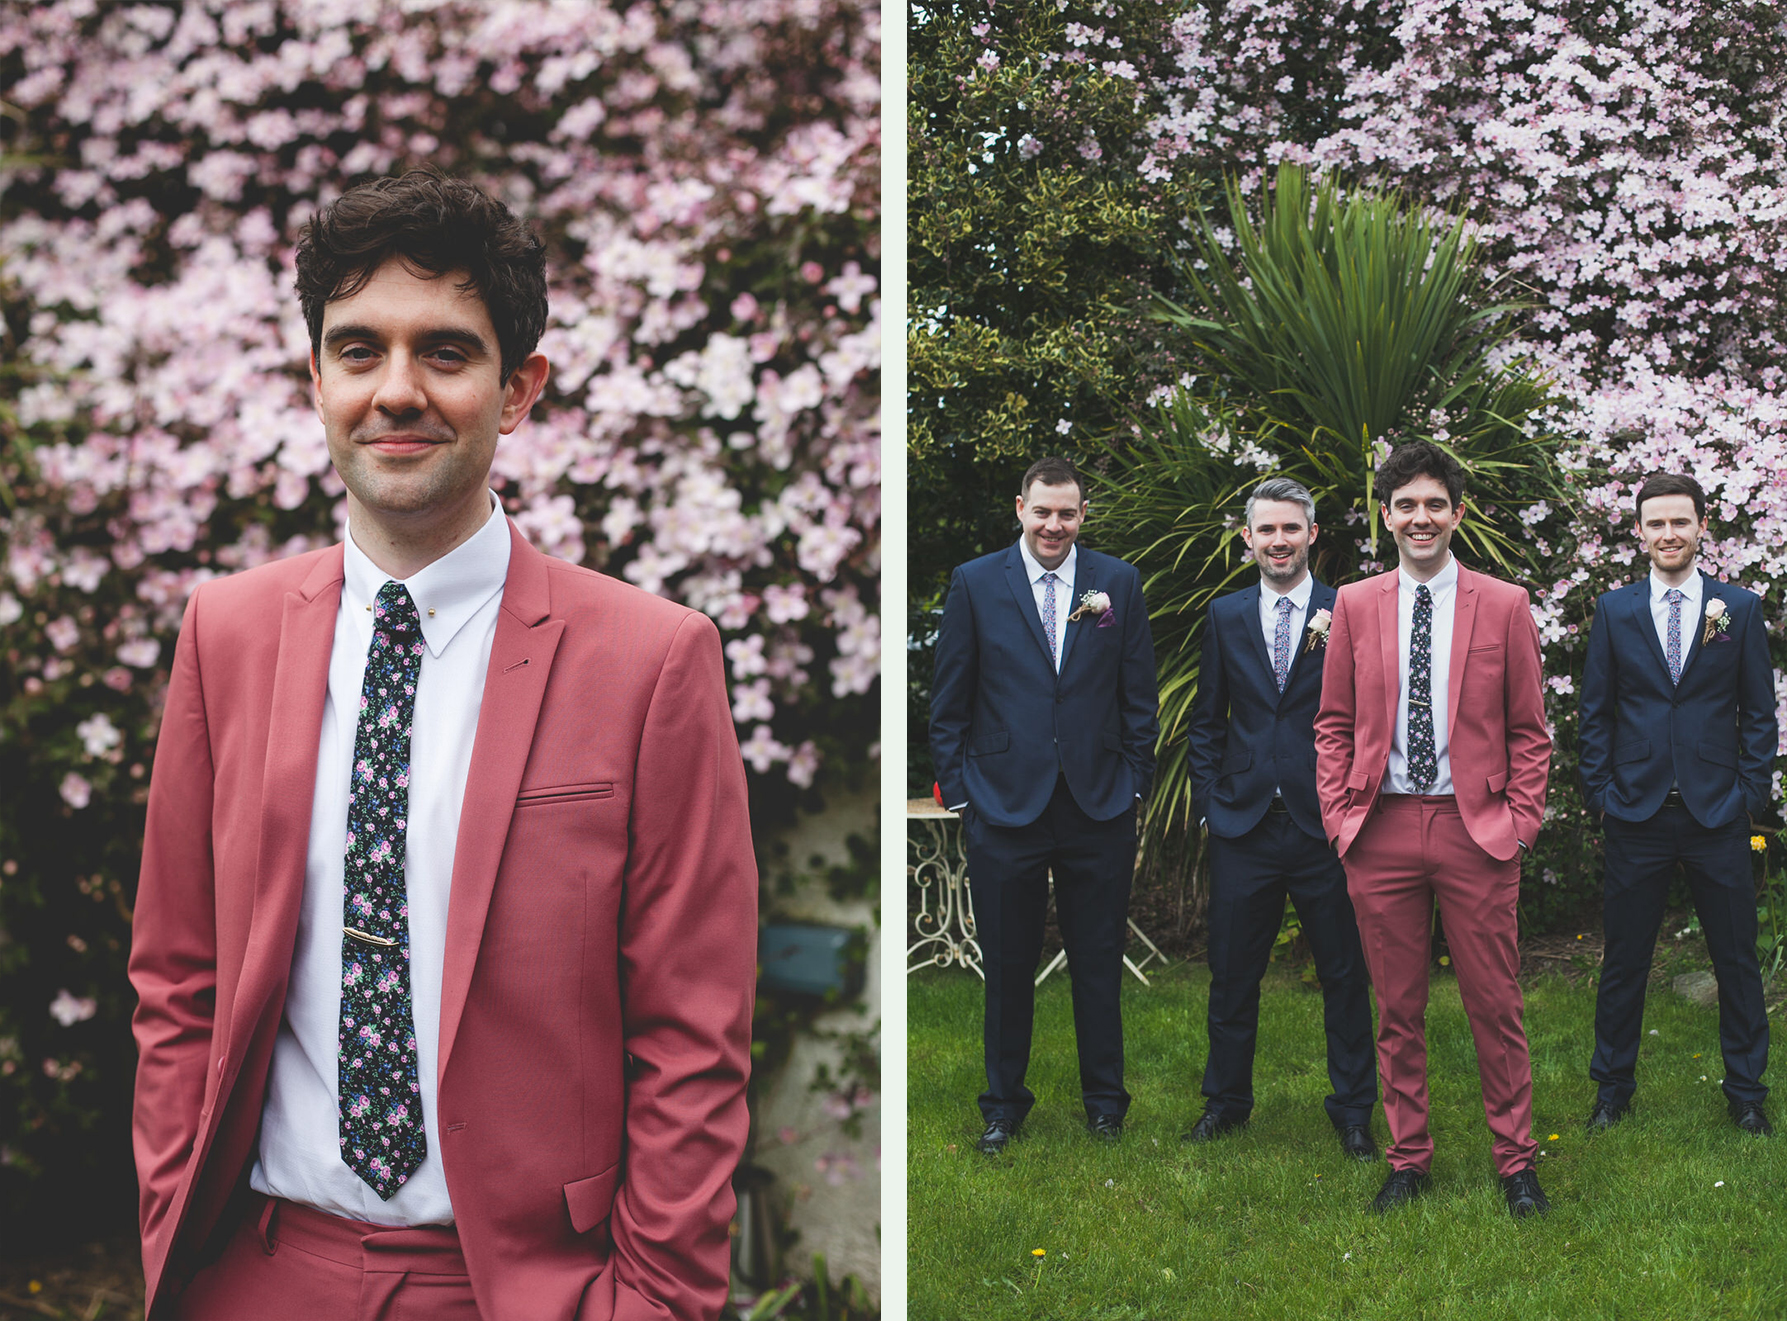 Stylish crushed pink grooms suit with floral tie